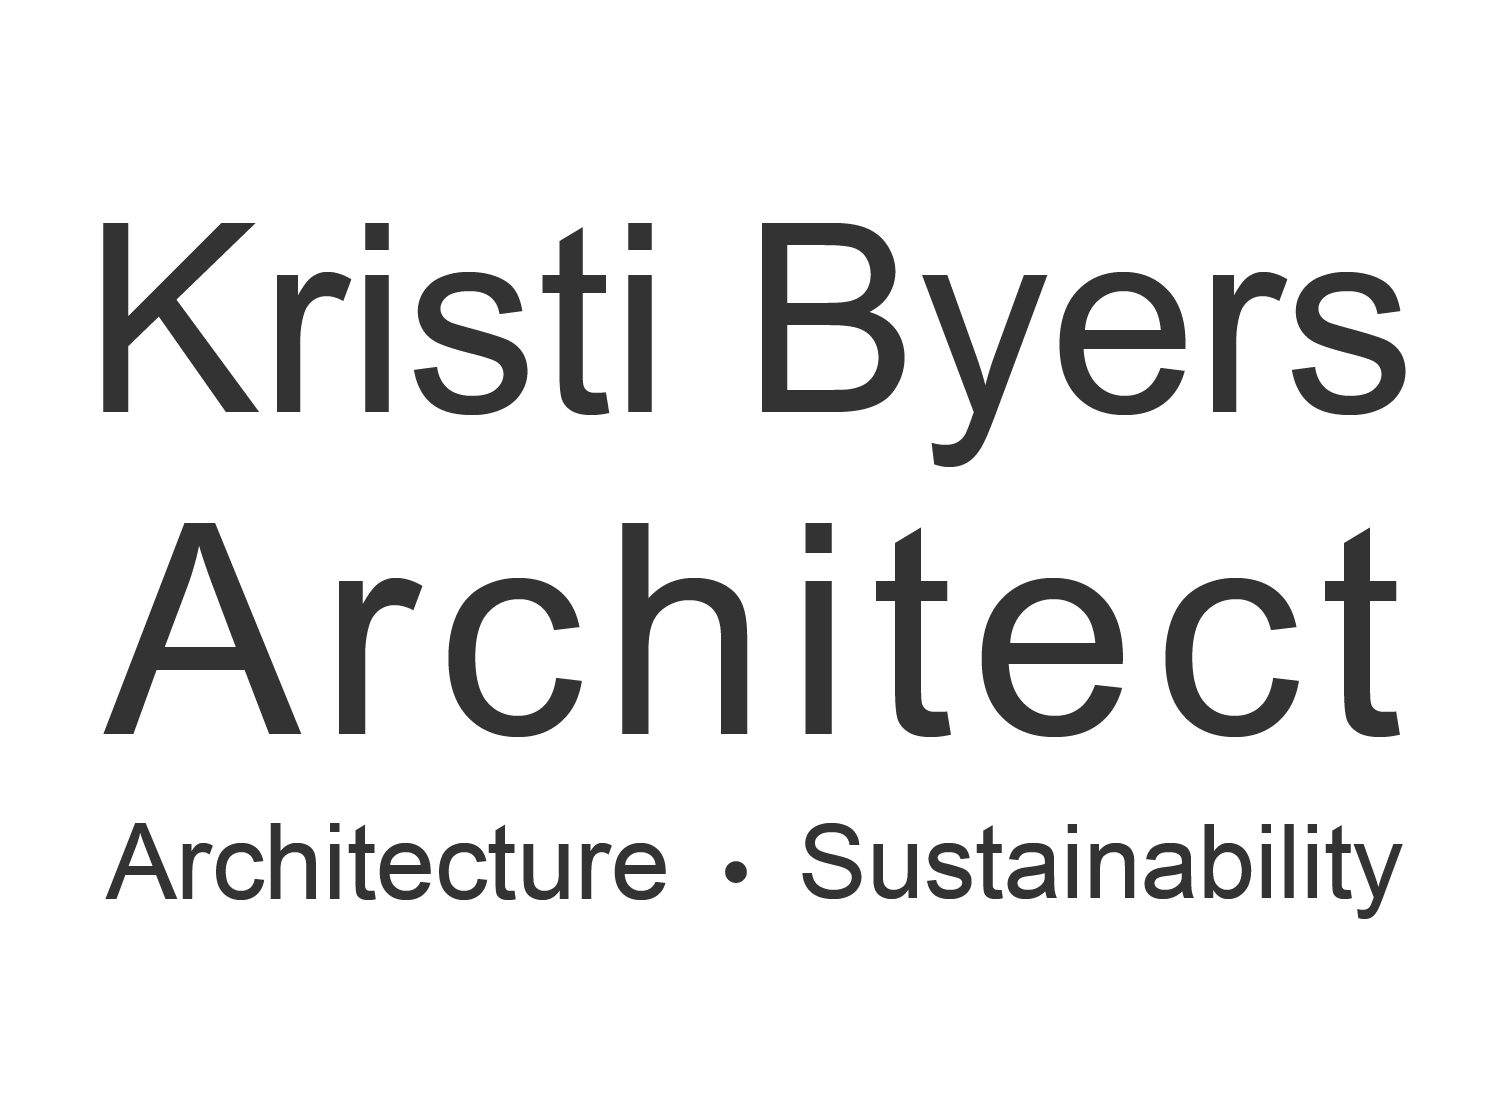 Kristi Byers, Architect